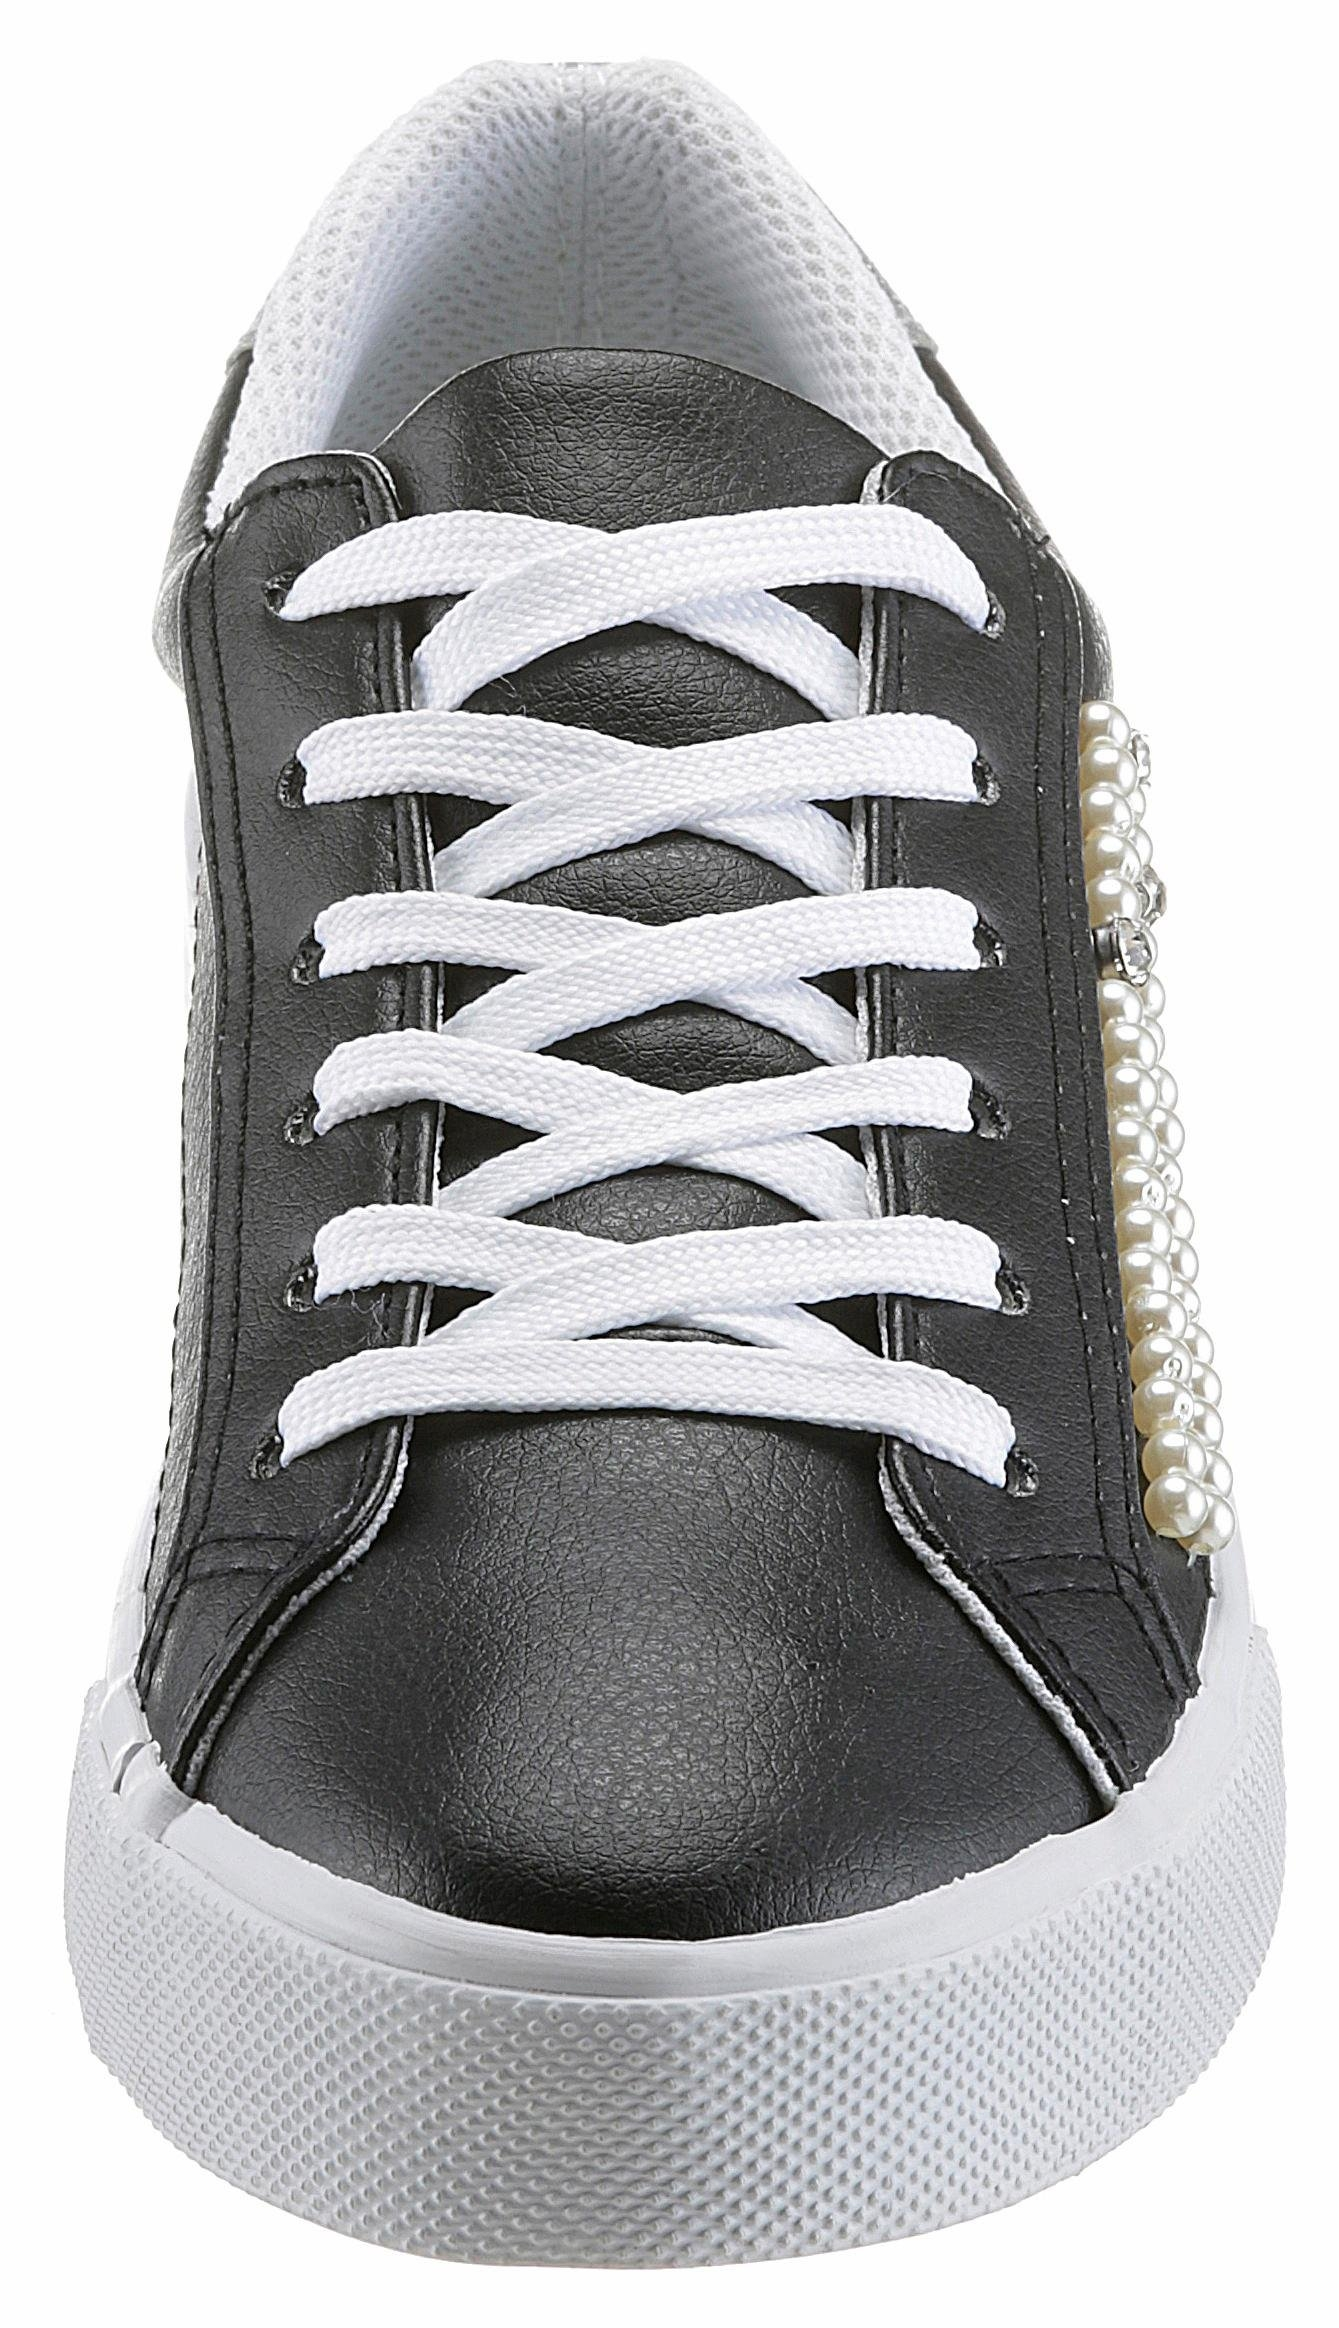 In Arizona Online Sneakers De Winkel KFTl1Jc